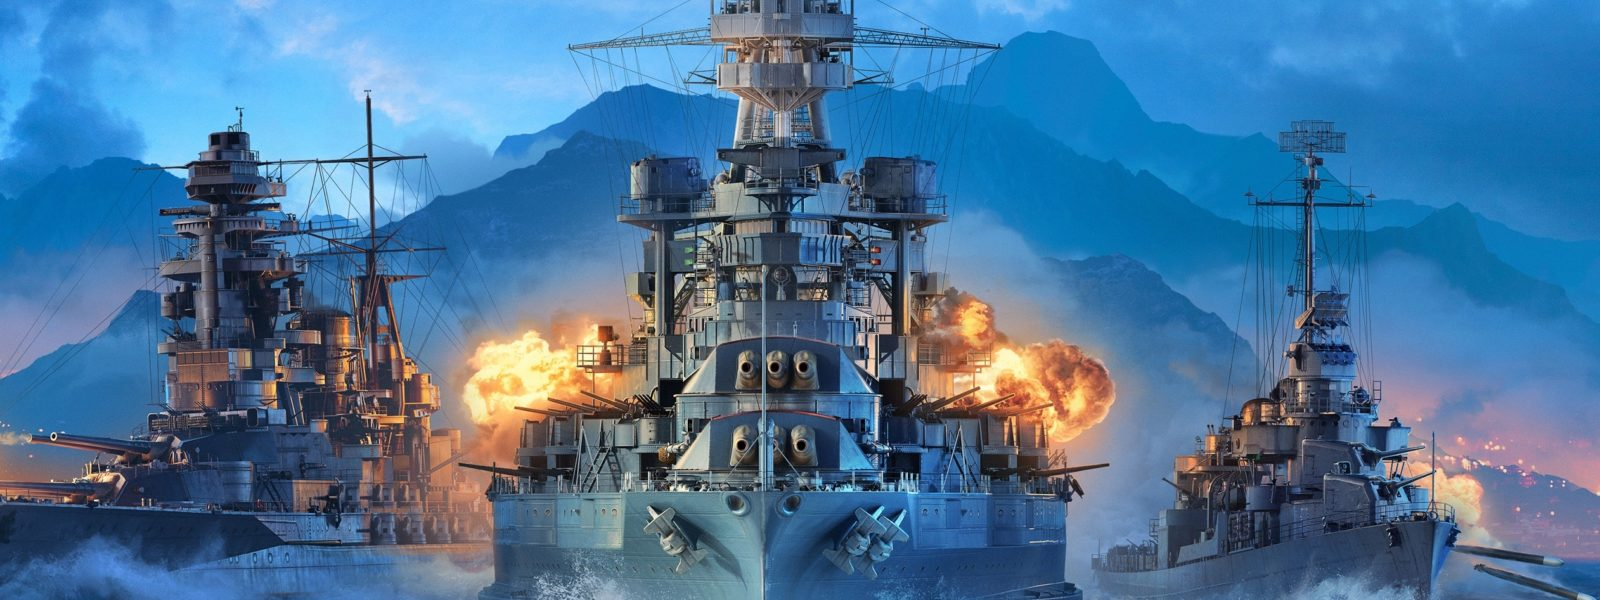 World of Warships Legends XboxSquad 1600x600